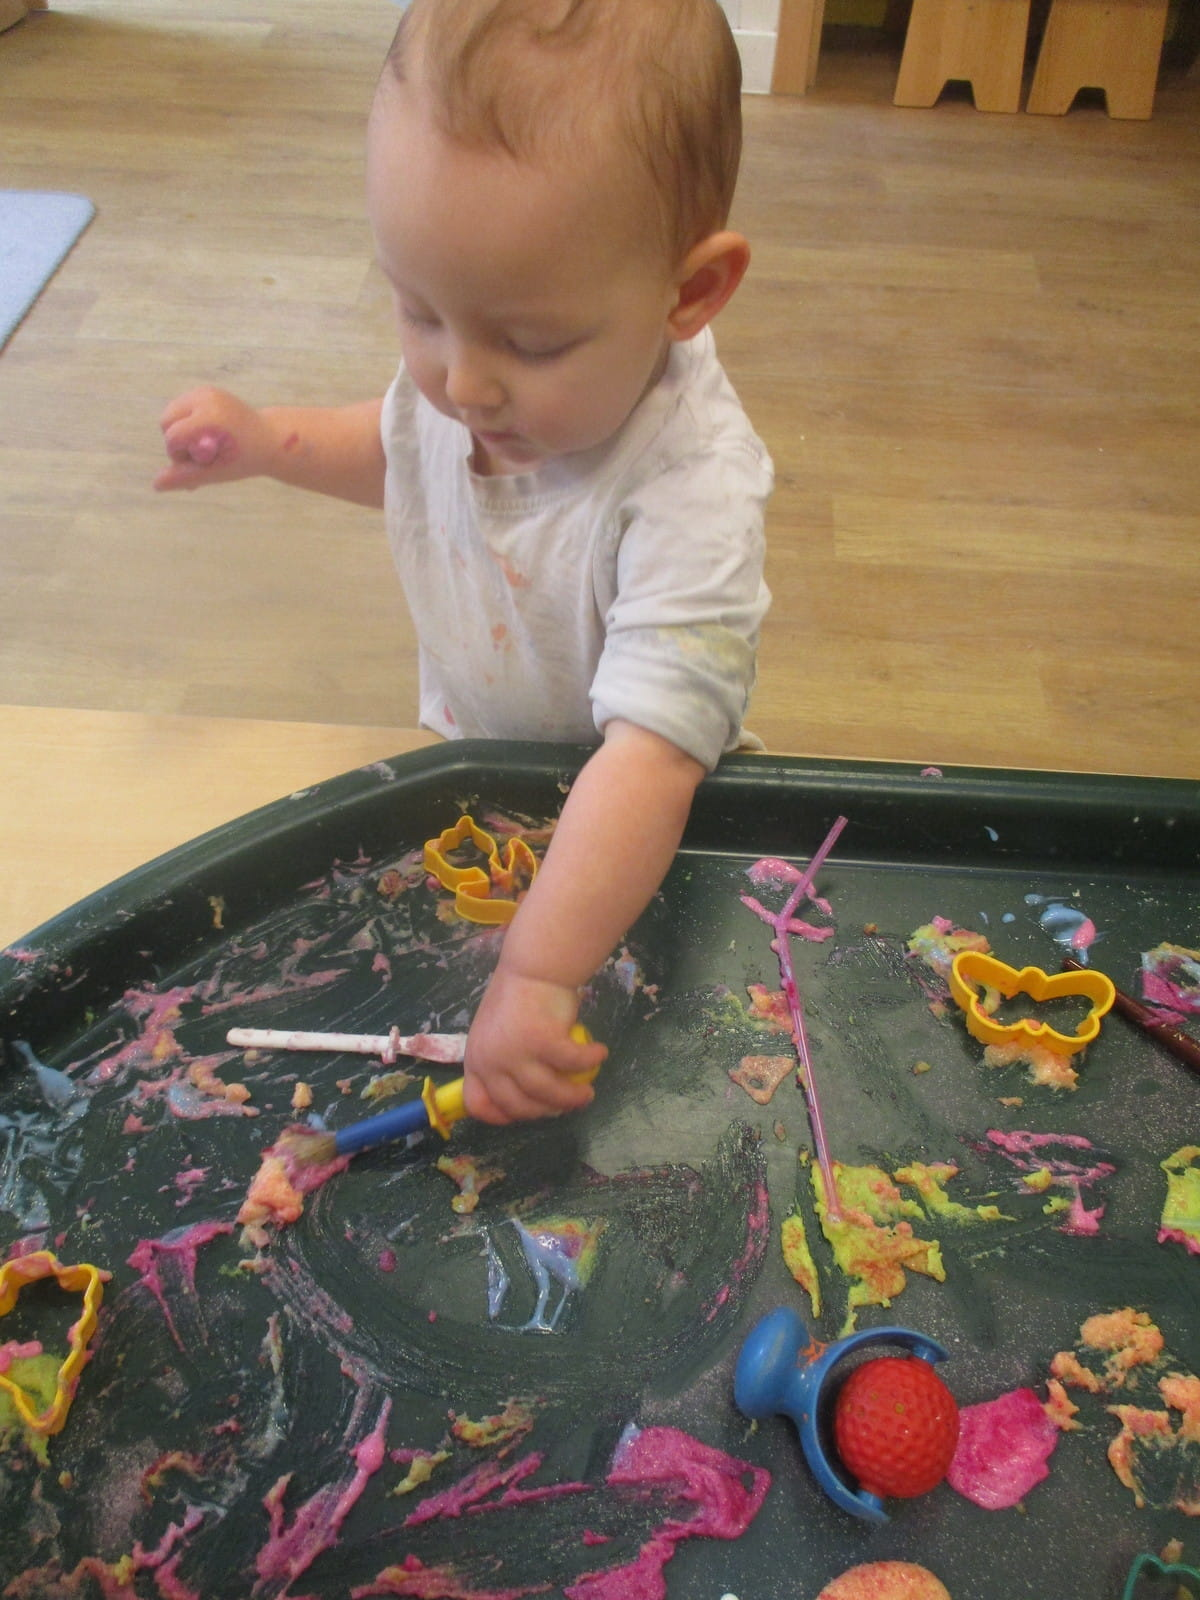 Twickenham nursery children investigate edible paint